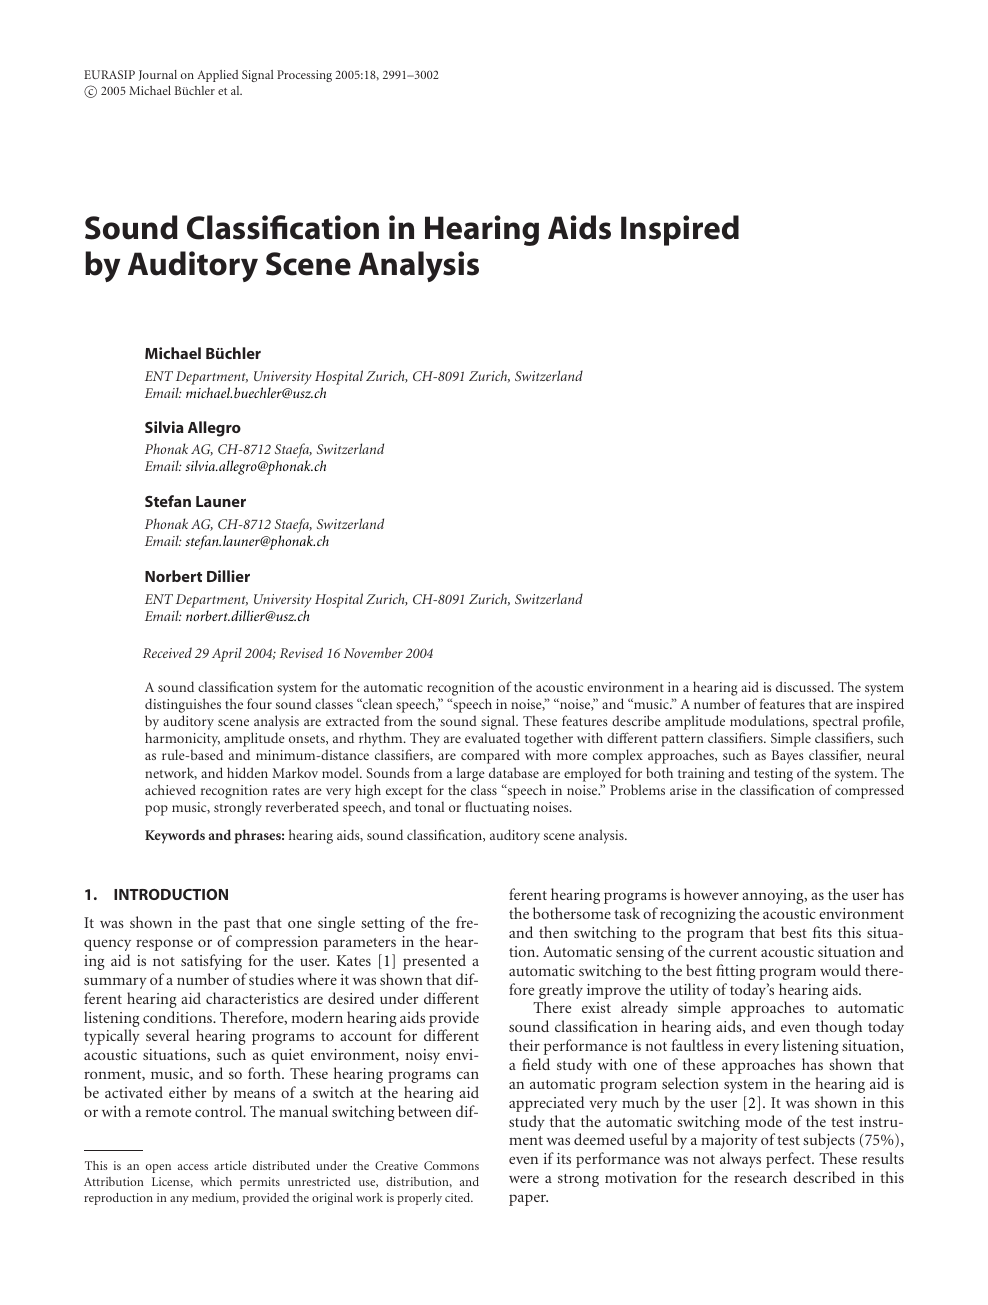 Sound Classification in Hearing Aids Inspired by Auditory